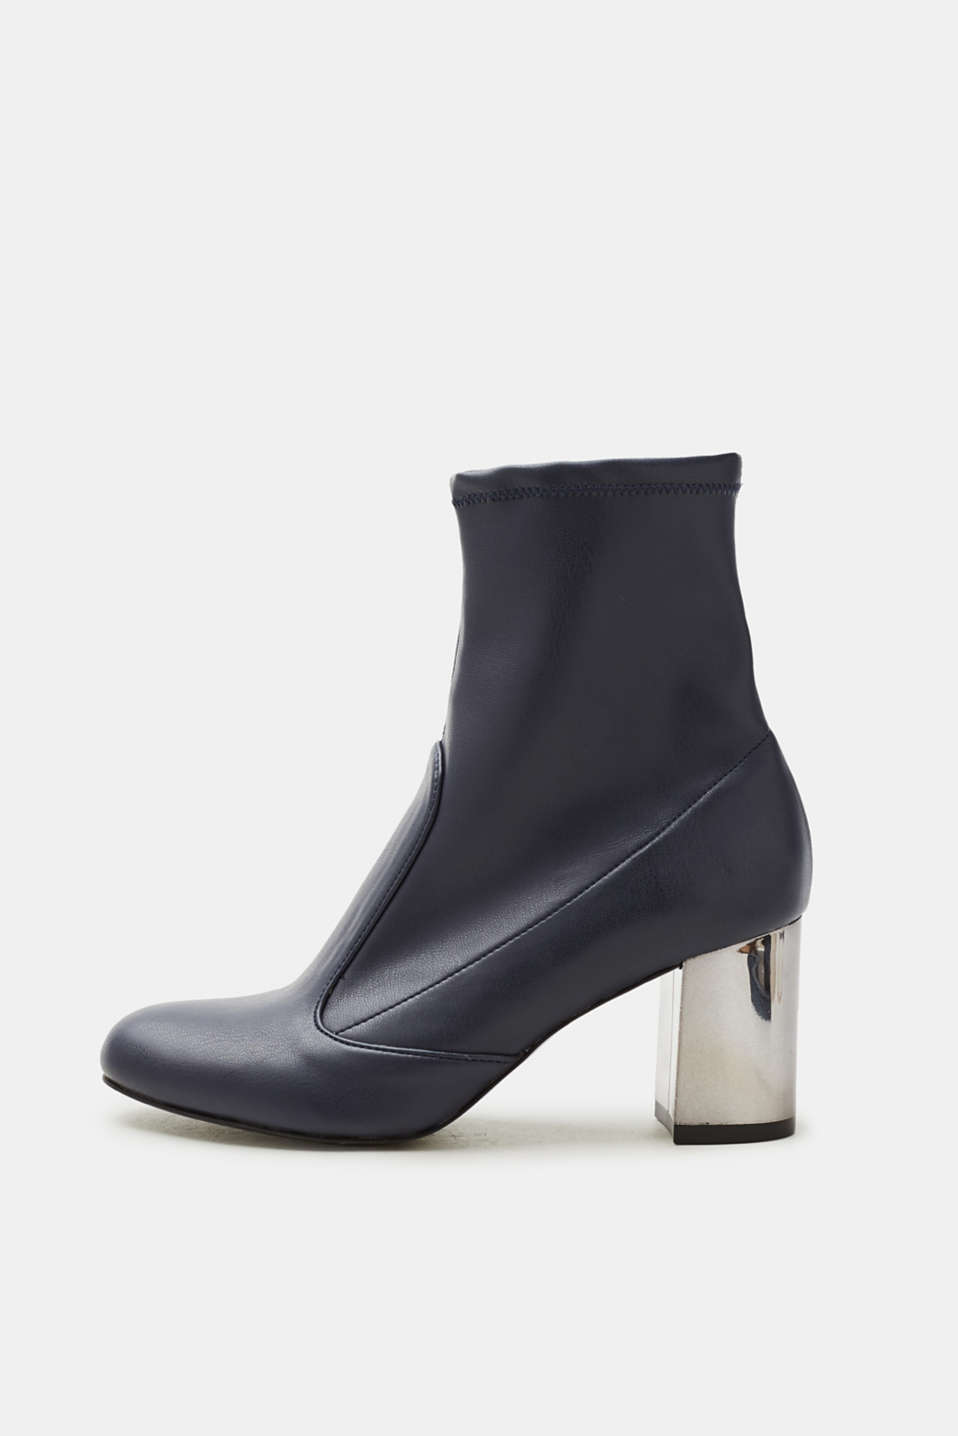 Esprit - Ankle boots with a block heel, in faux leather